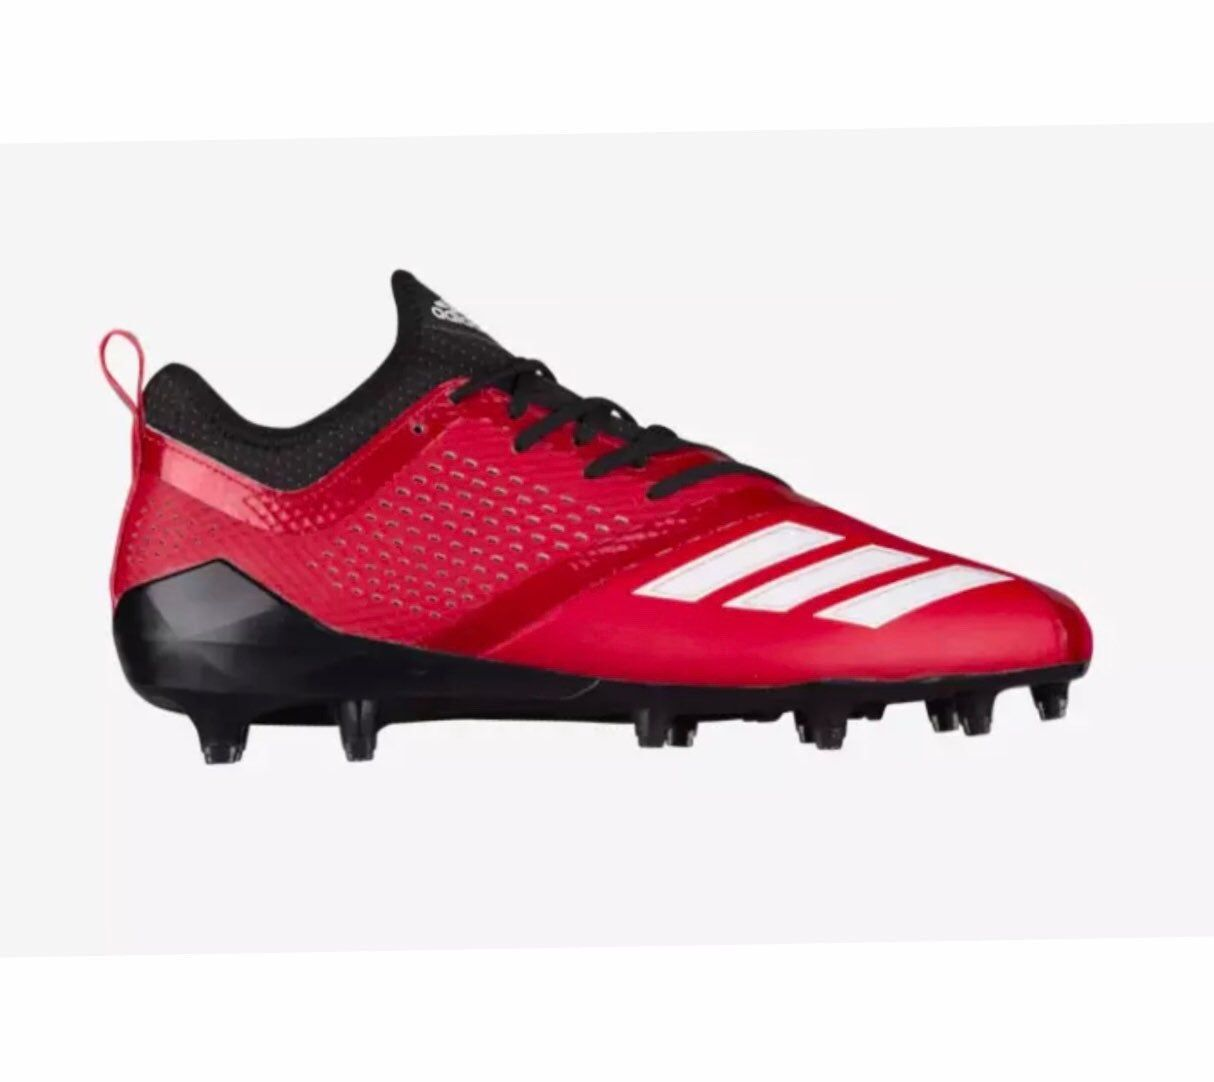 Adidas Adizero 5 Star 7 0 Low Football Cleats Red Black Cq0322 Men Sz 15 New Without Box Cleats Adidas Cleats Football Cleats